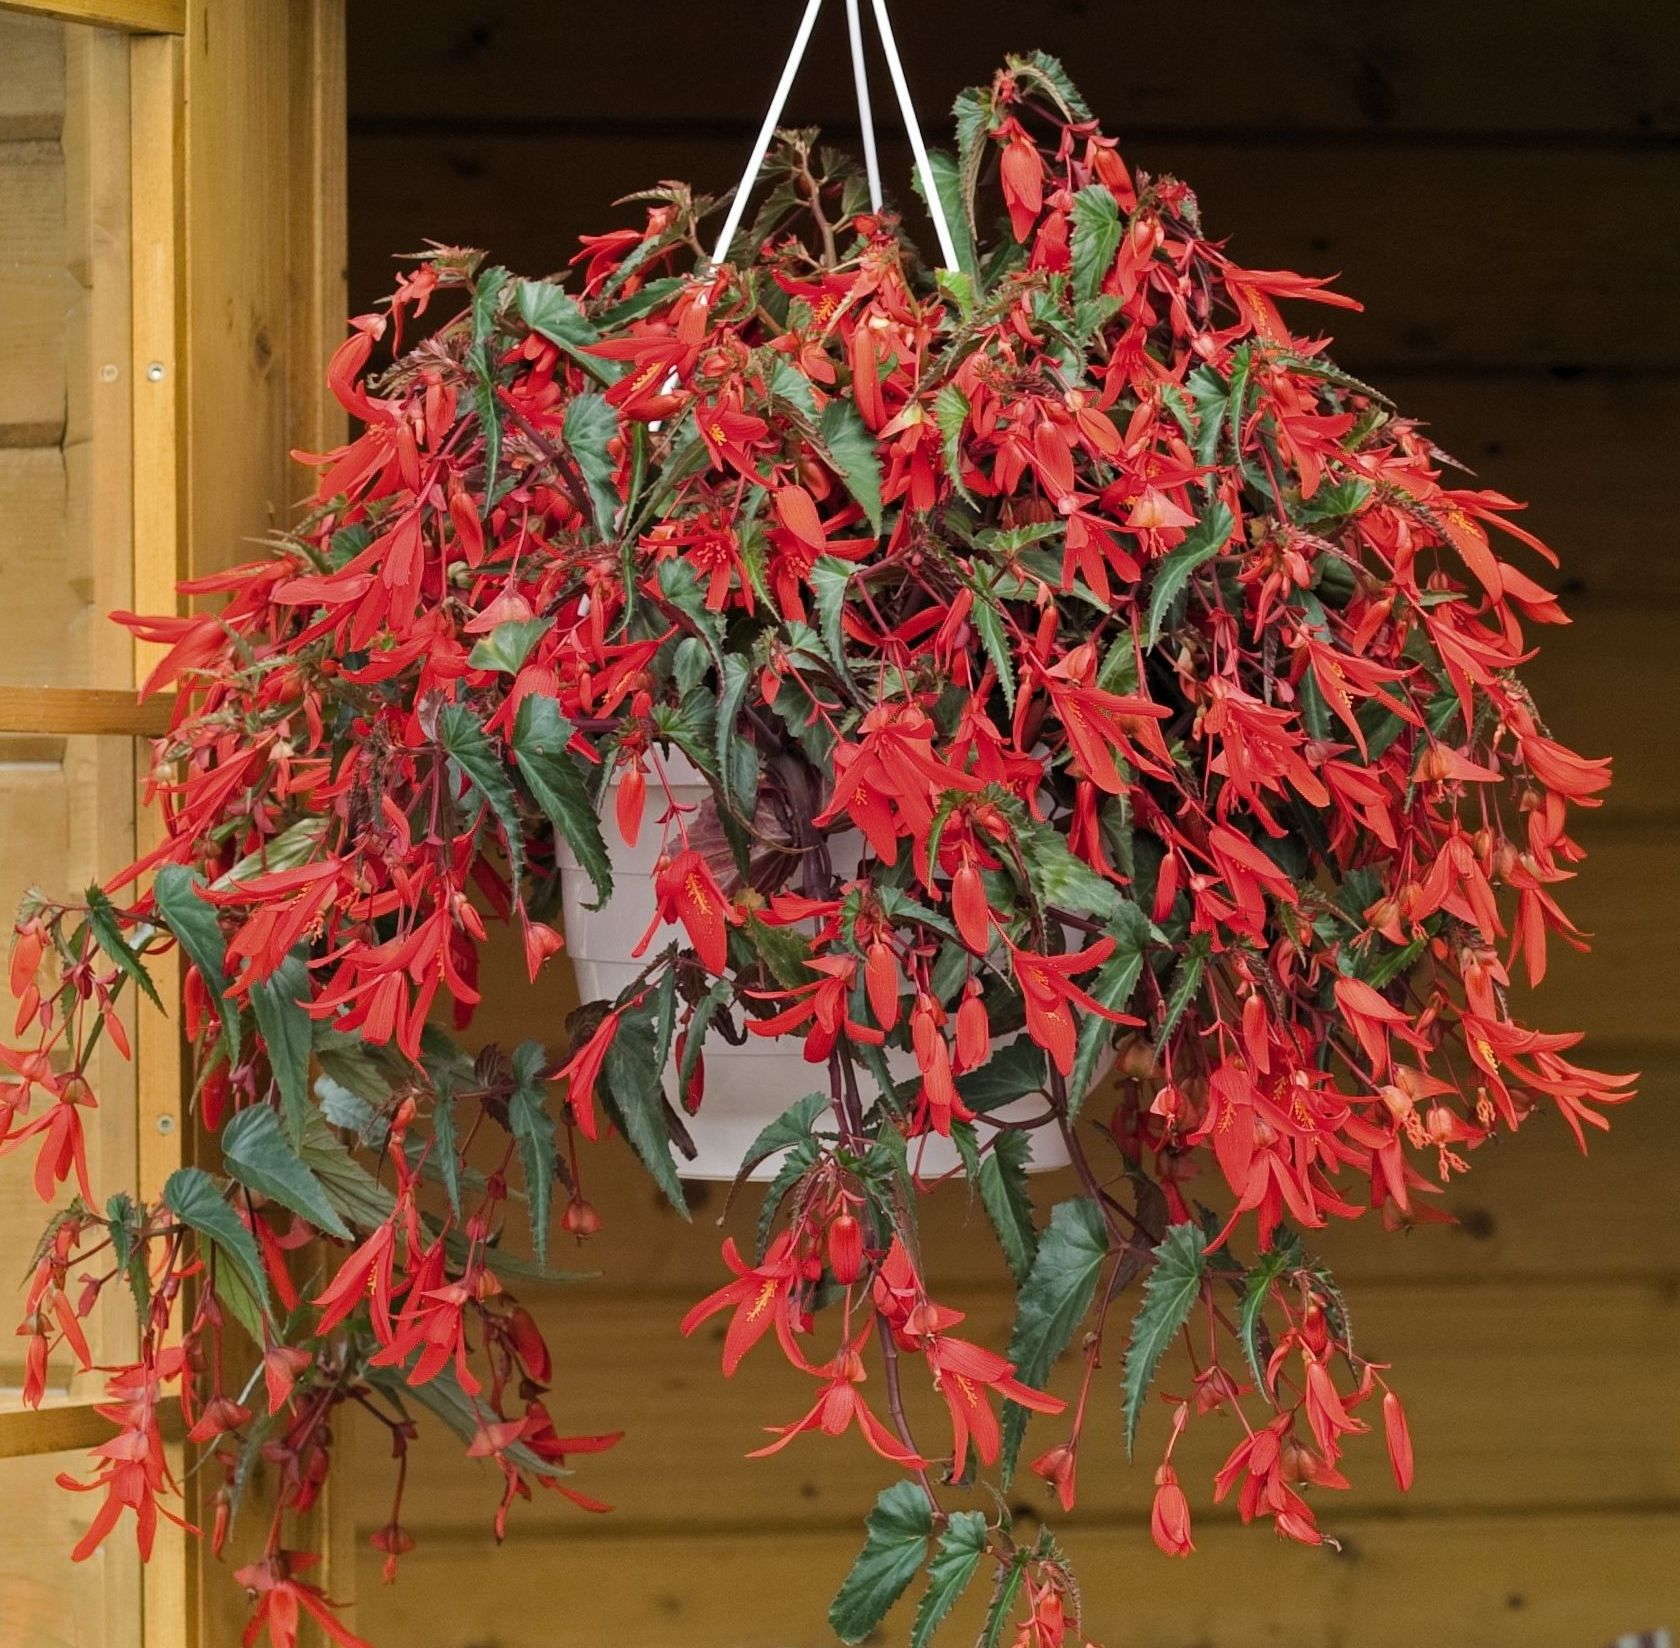 Begonia boliviensis 'Santa Cruz Sunset' Is A Medal Of Excellence Nominee